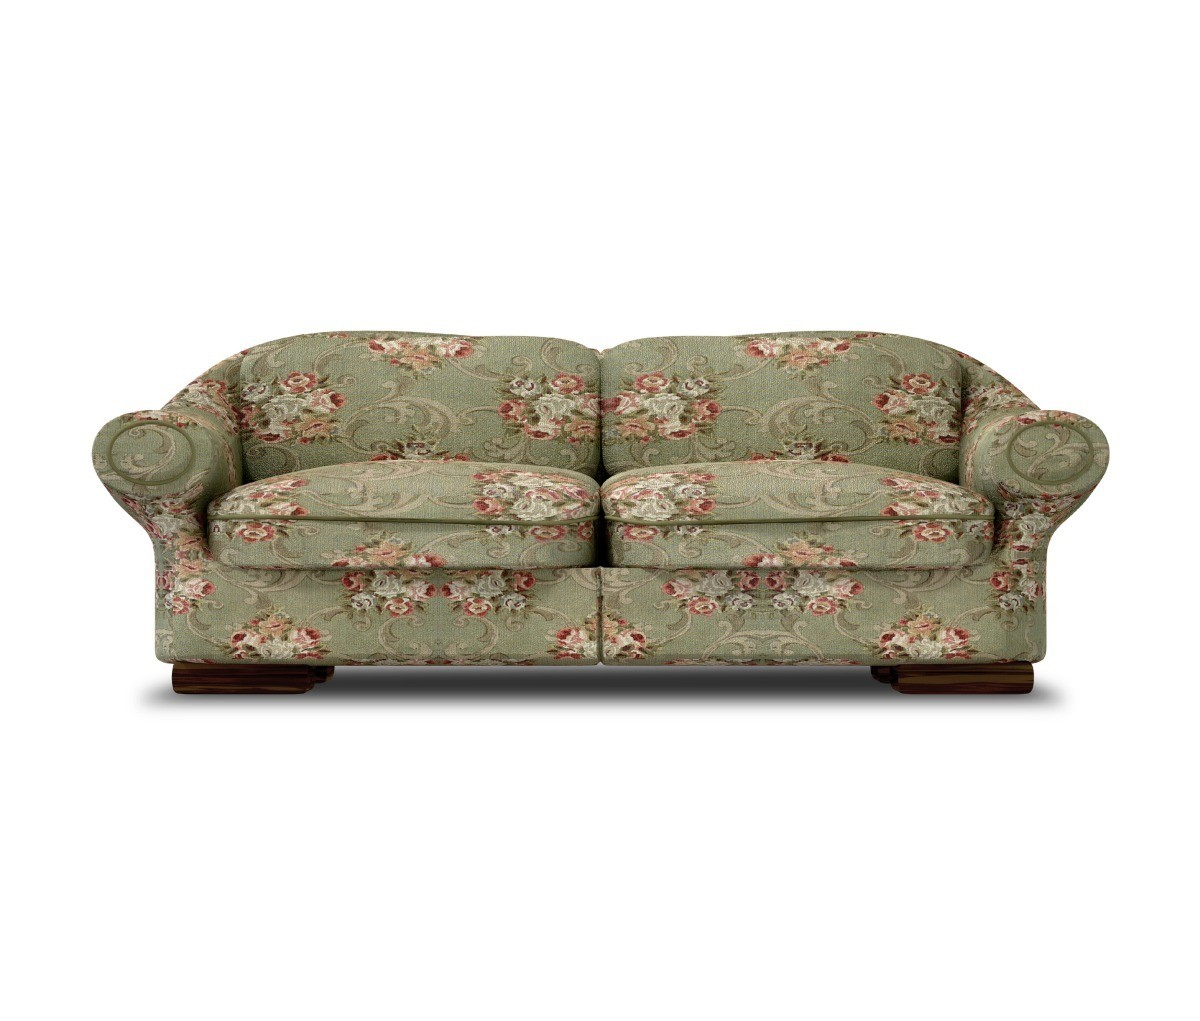 Sensational Removing Odors From A Couch Thriftyfun Pabps2019 Chair Design Images Pabps2019Com